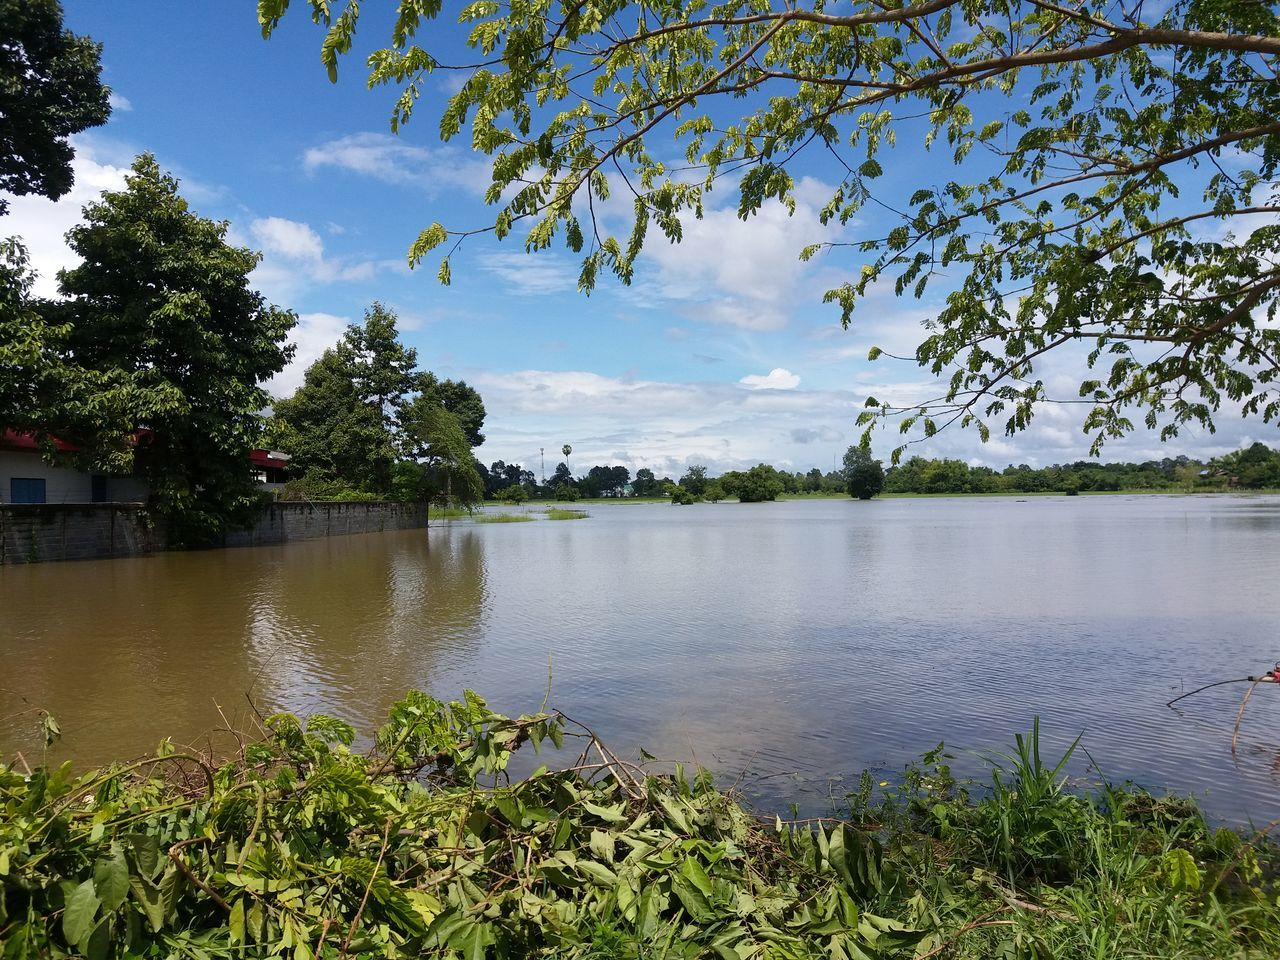 tree, nature, growth, water, sky, beauty in nature, scenics, lake, tranquil scene, day, plant, outdoors, cloud - sky, tranquility, no people, green color, leaf, branch